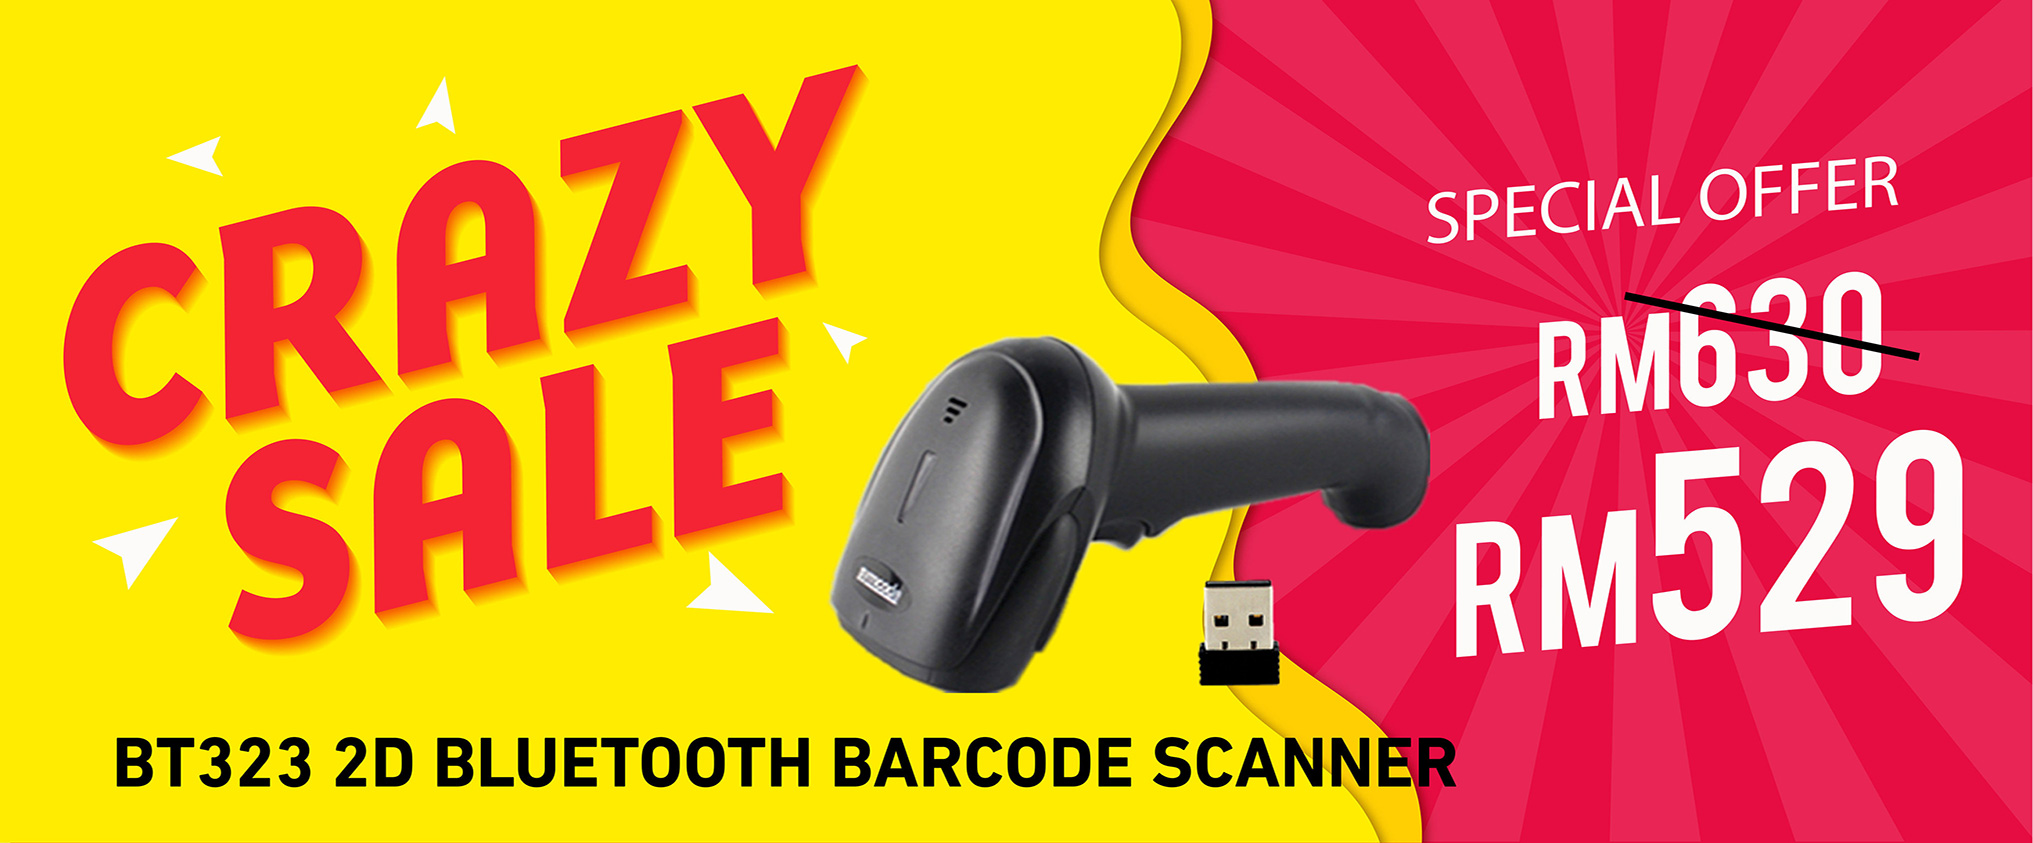 BT323 2D Bluetooth Barcode Scanner Crazy Sale